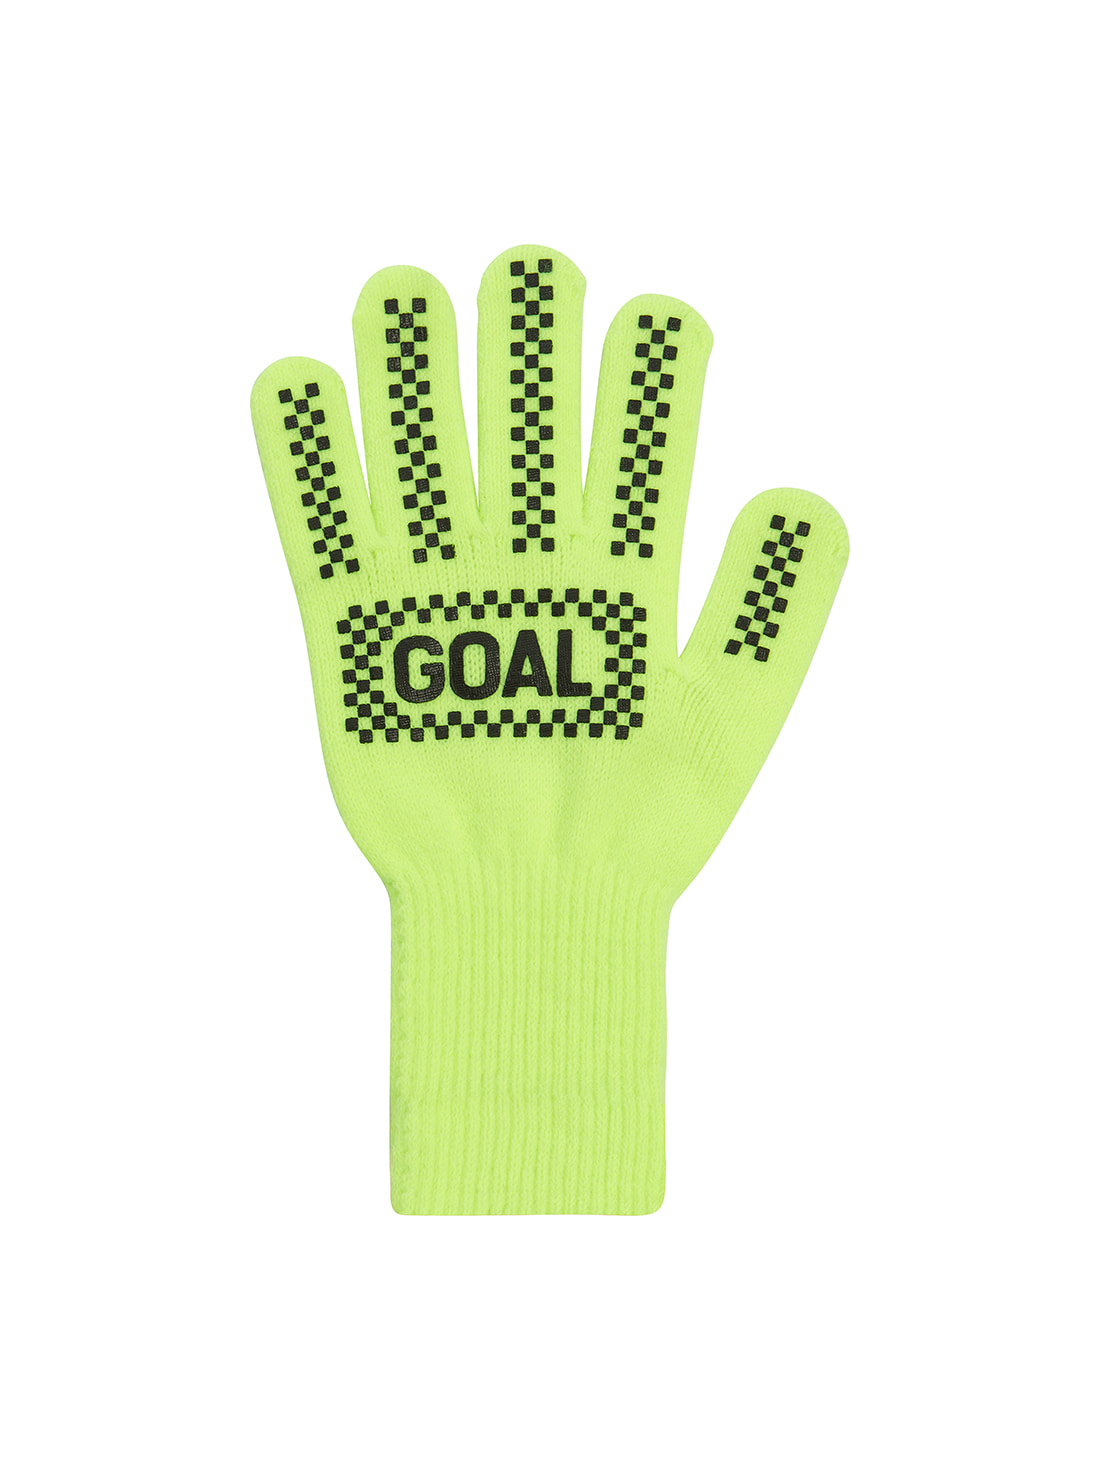 GOALSTUDIO GOAL GLOVE - LIME